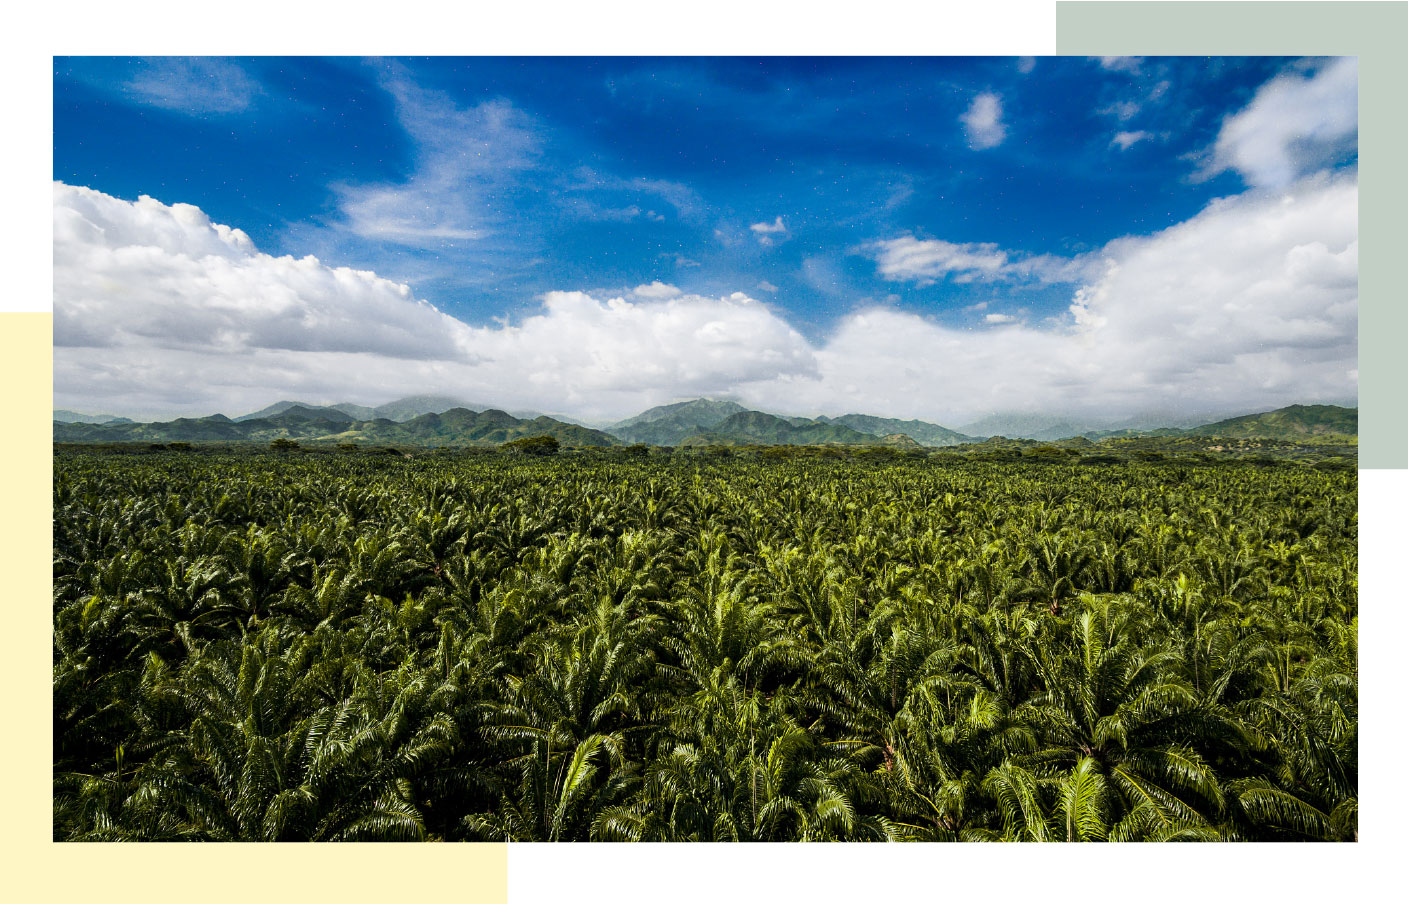 Palm oil tree field with blue sky in the background